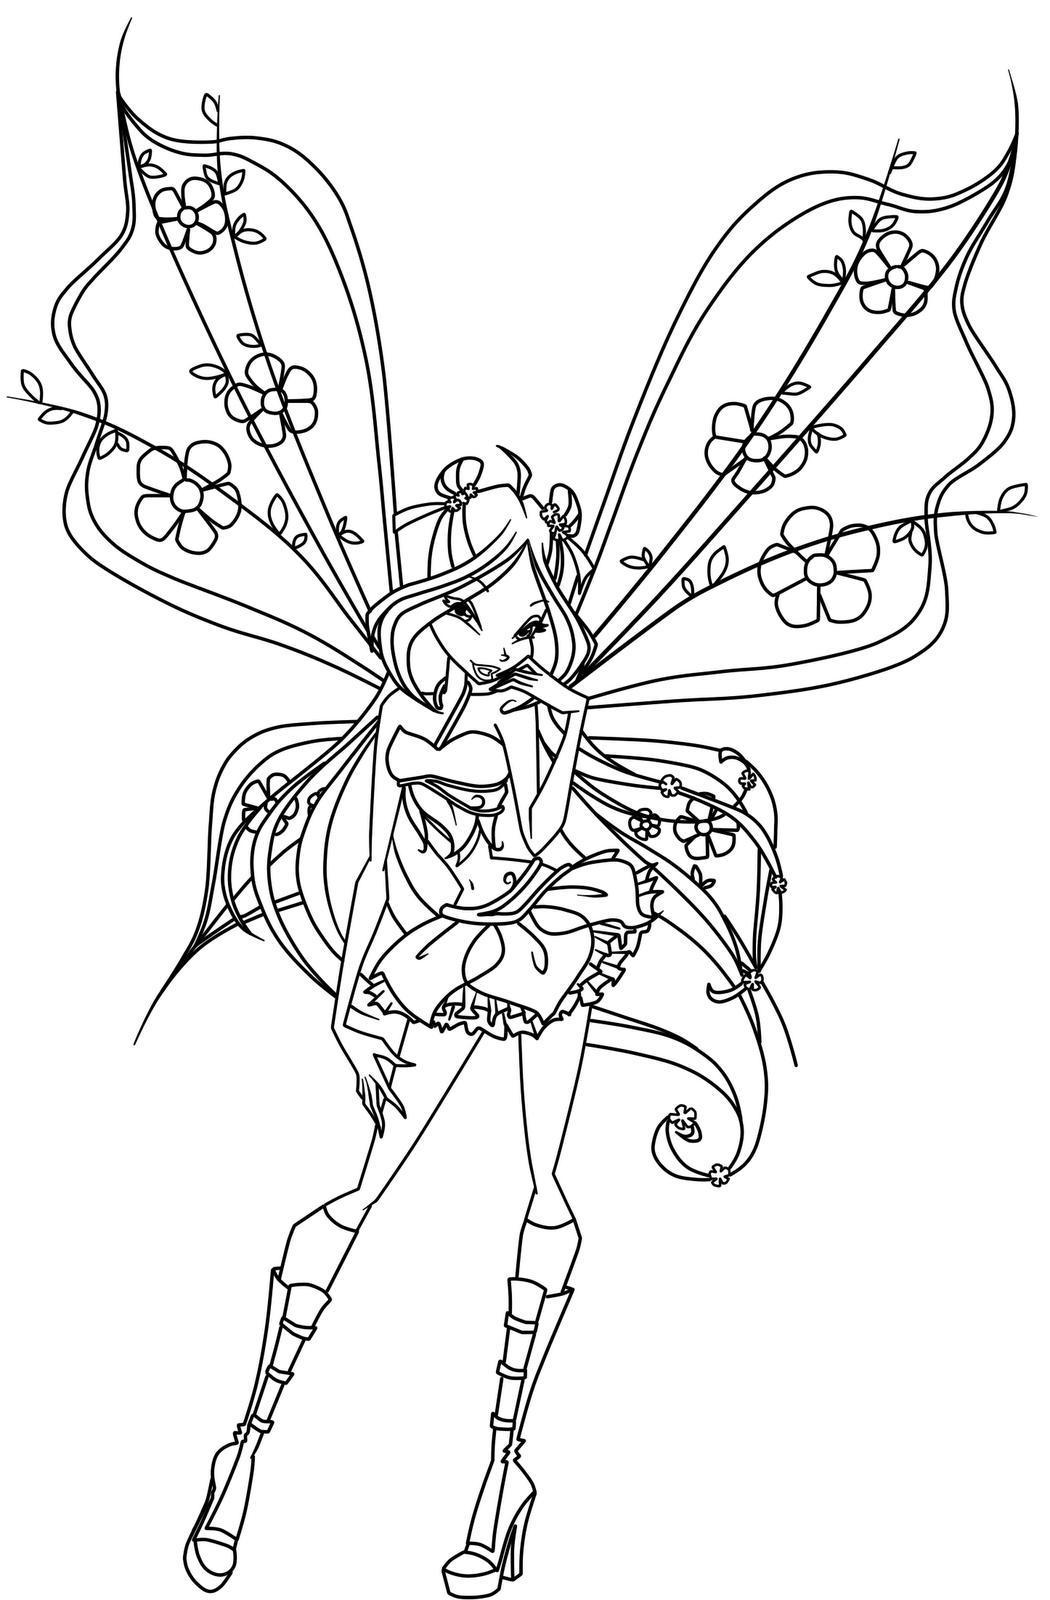 online winx club coloring pages - photo#38